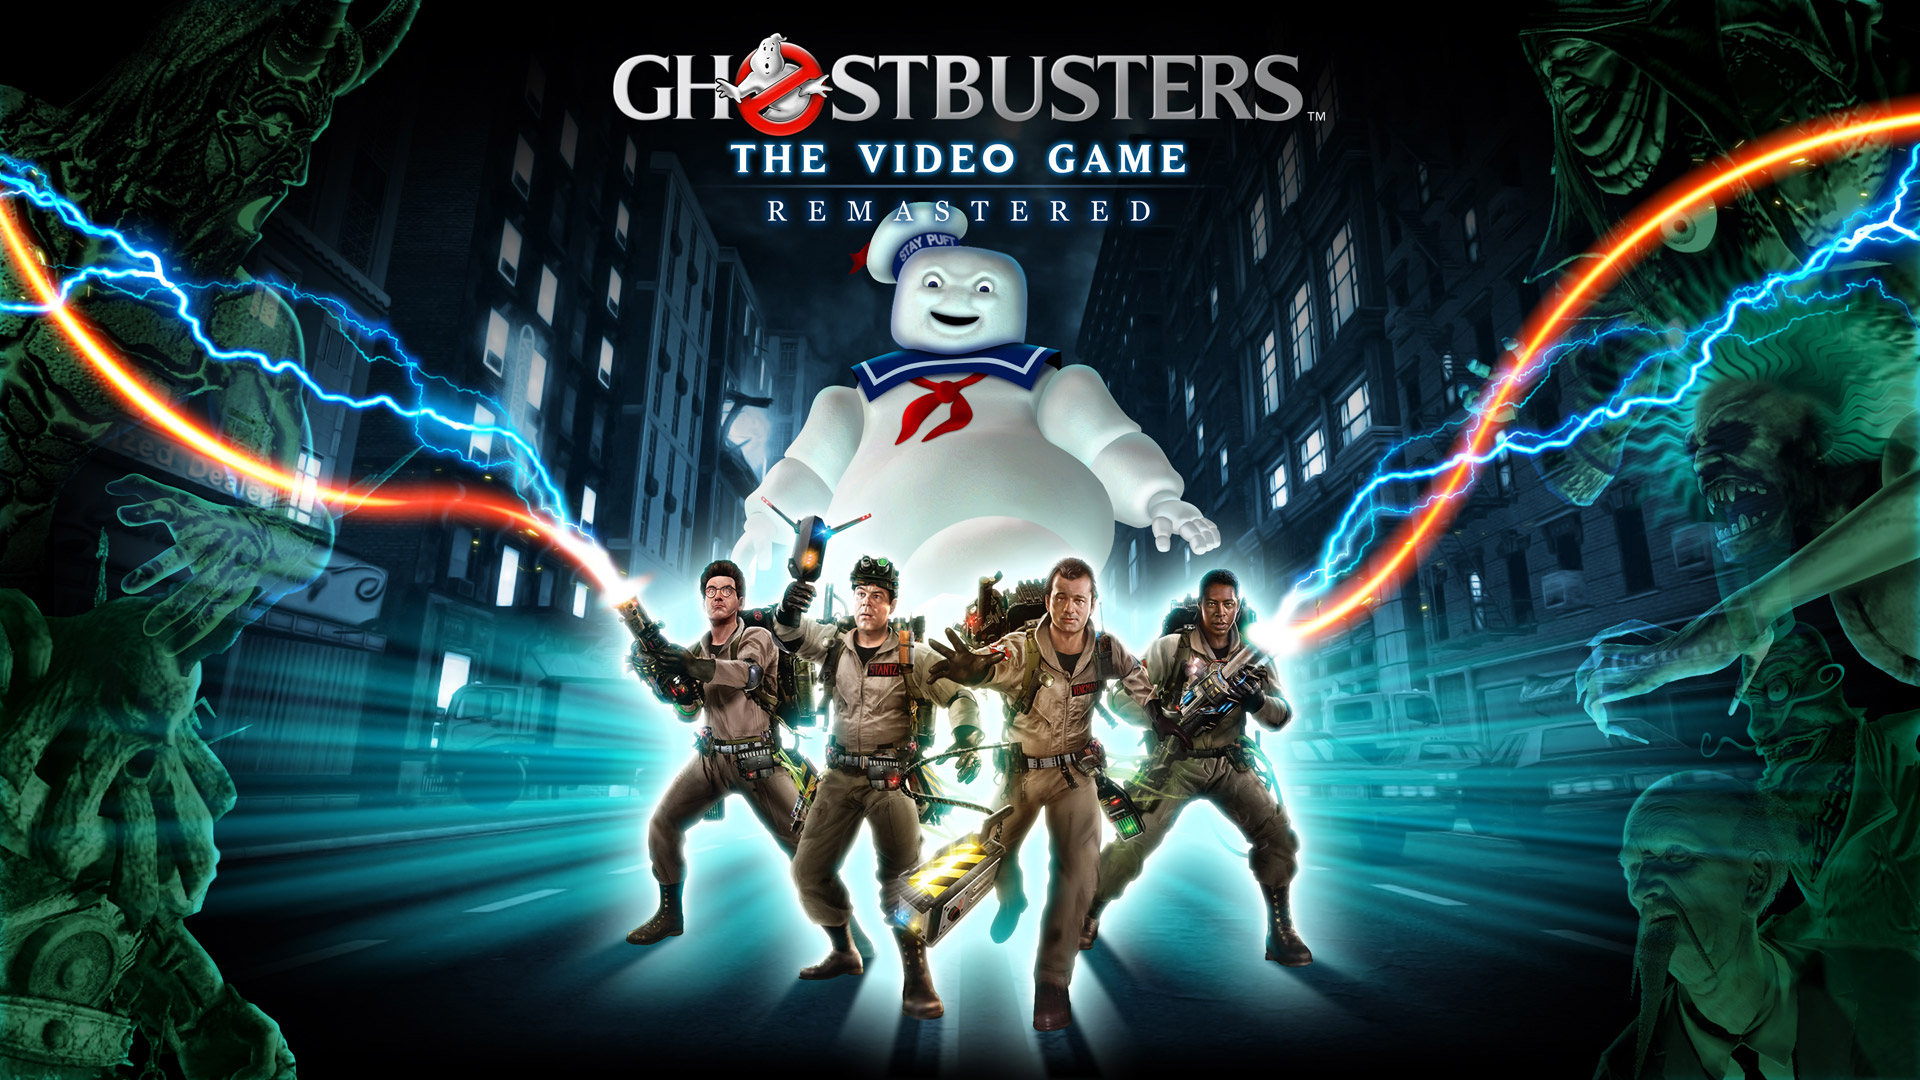 Free Ghostbusters: The Video Game Wallpaper in 1920x1080